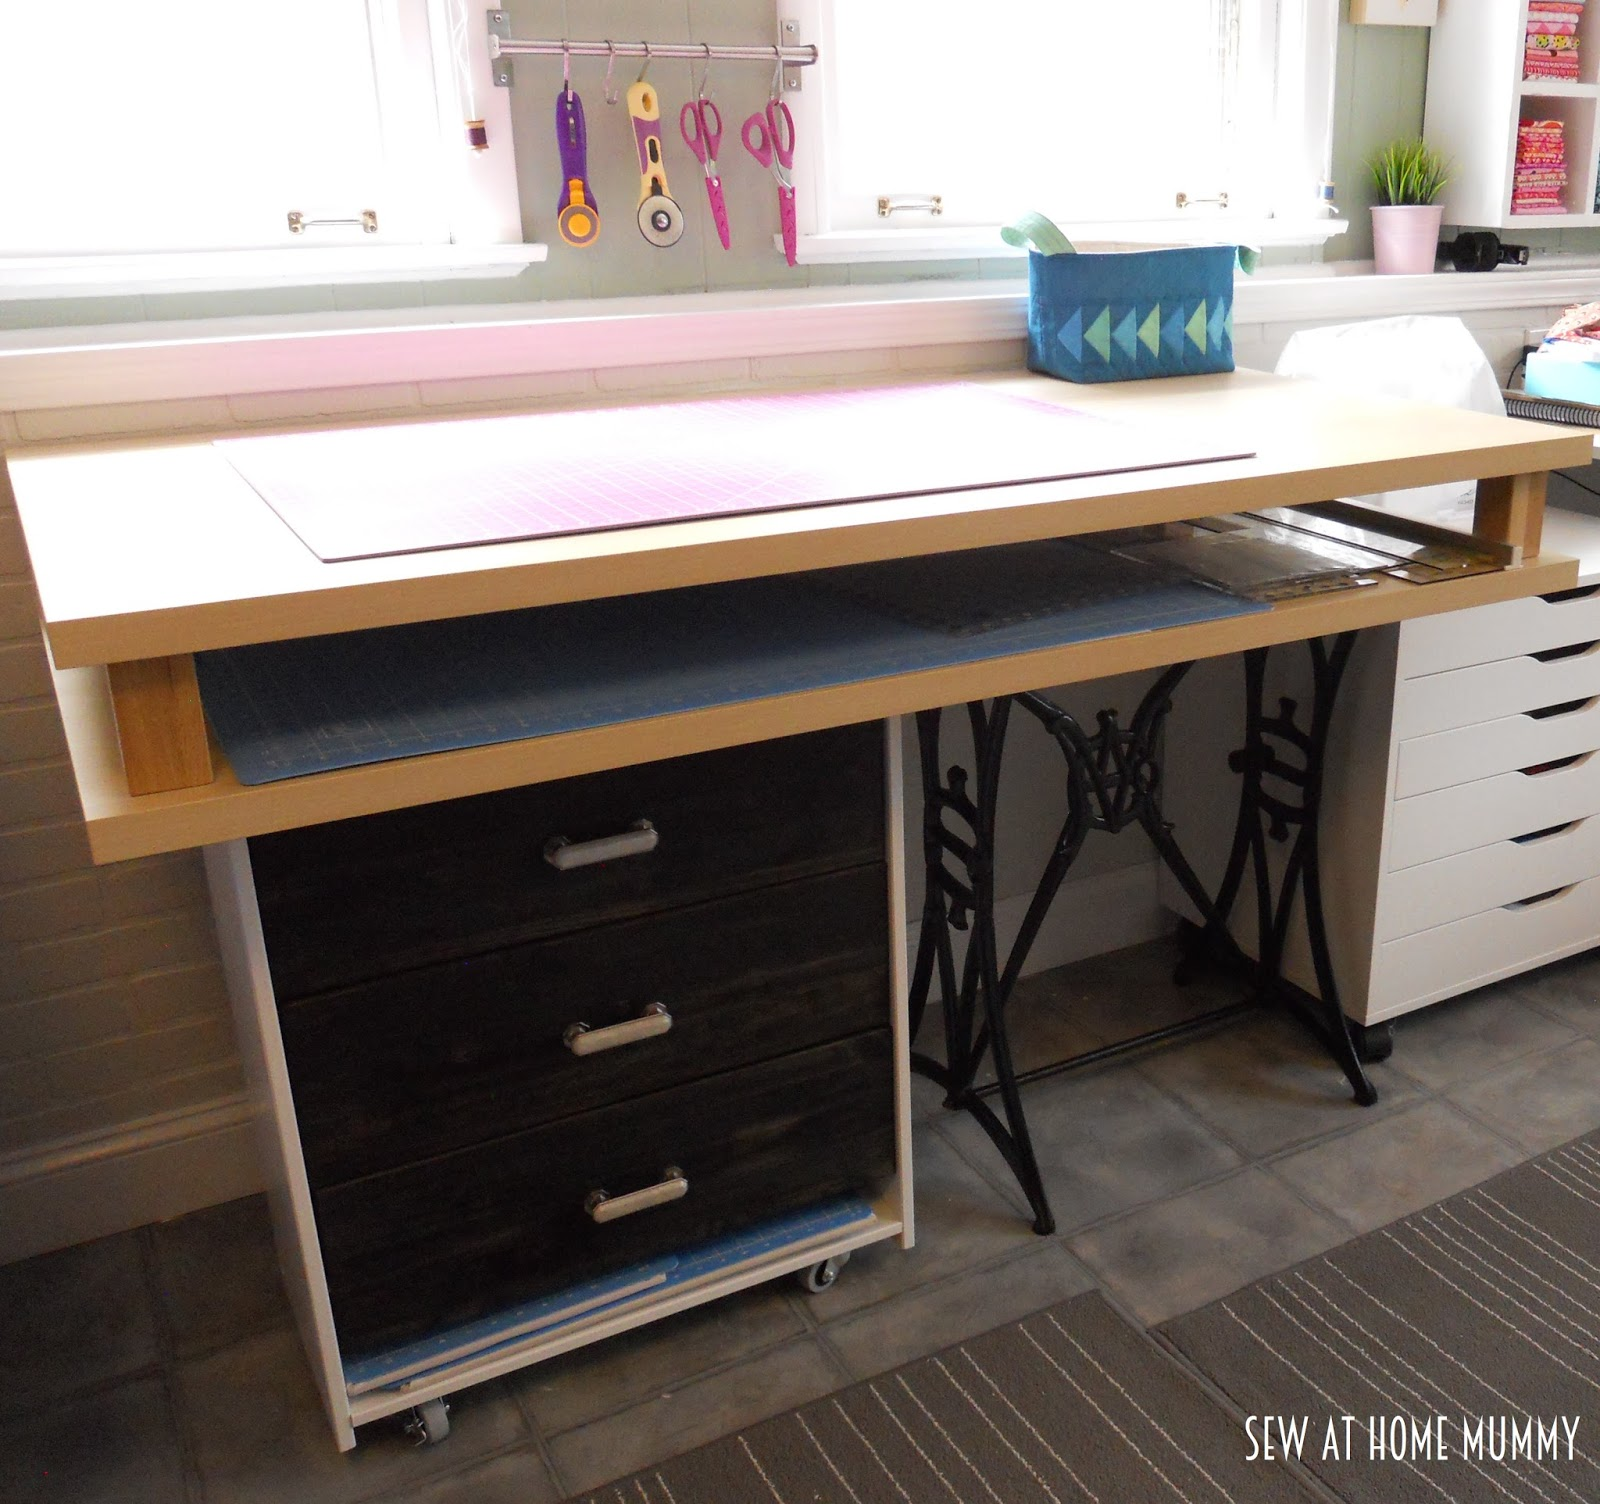 Sew at Home Mummy: DIY Fabric Cutting and Craft Table ...